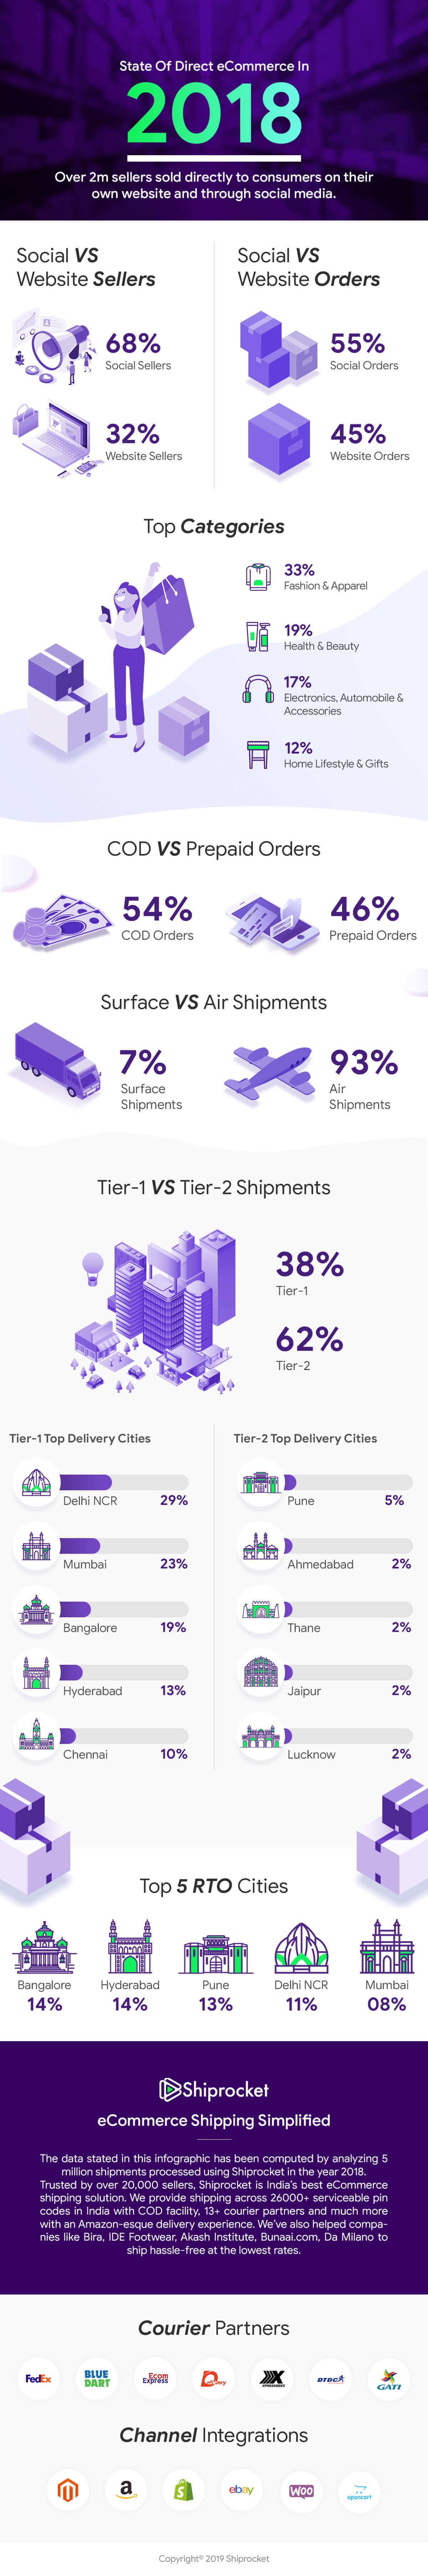 State of eCommerce Shipping in India 2018